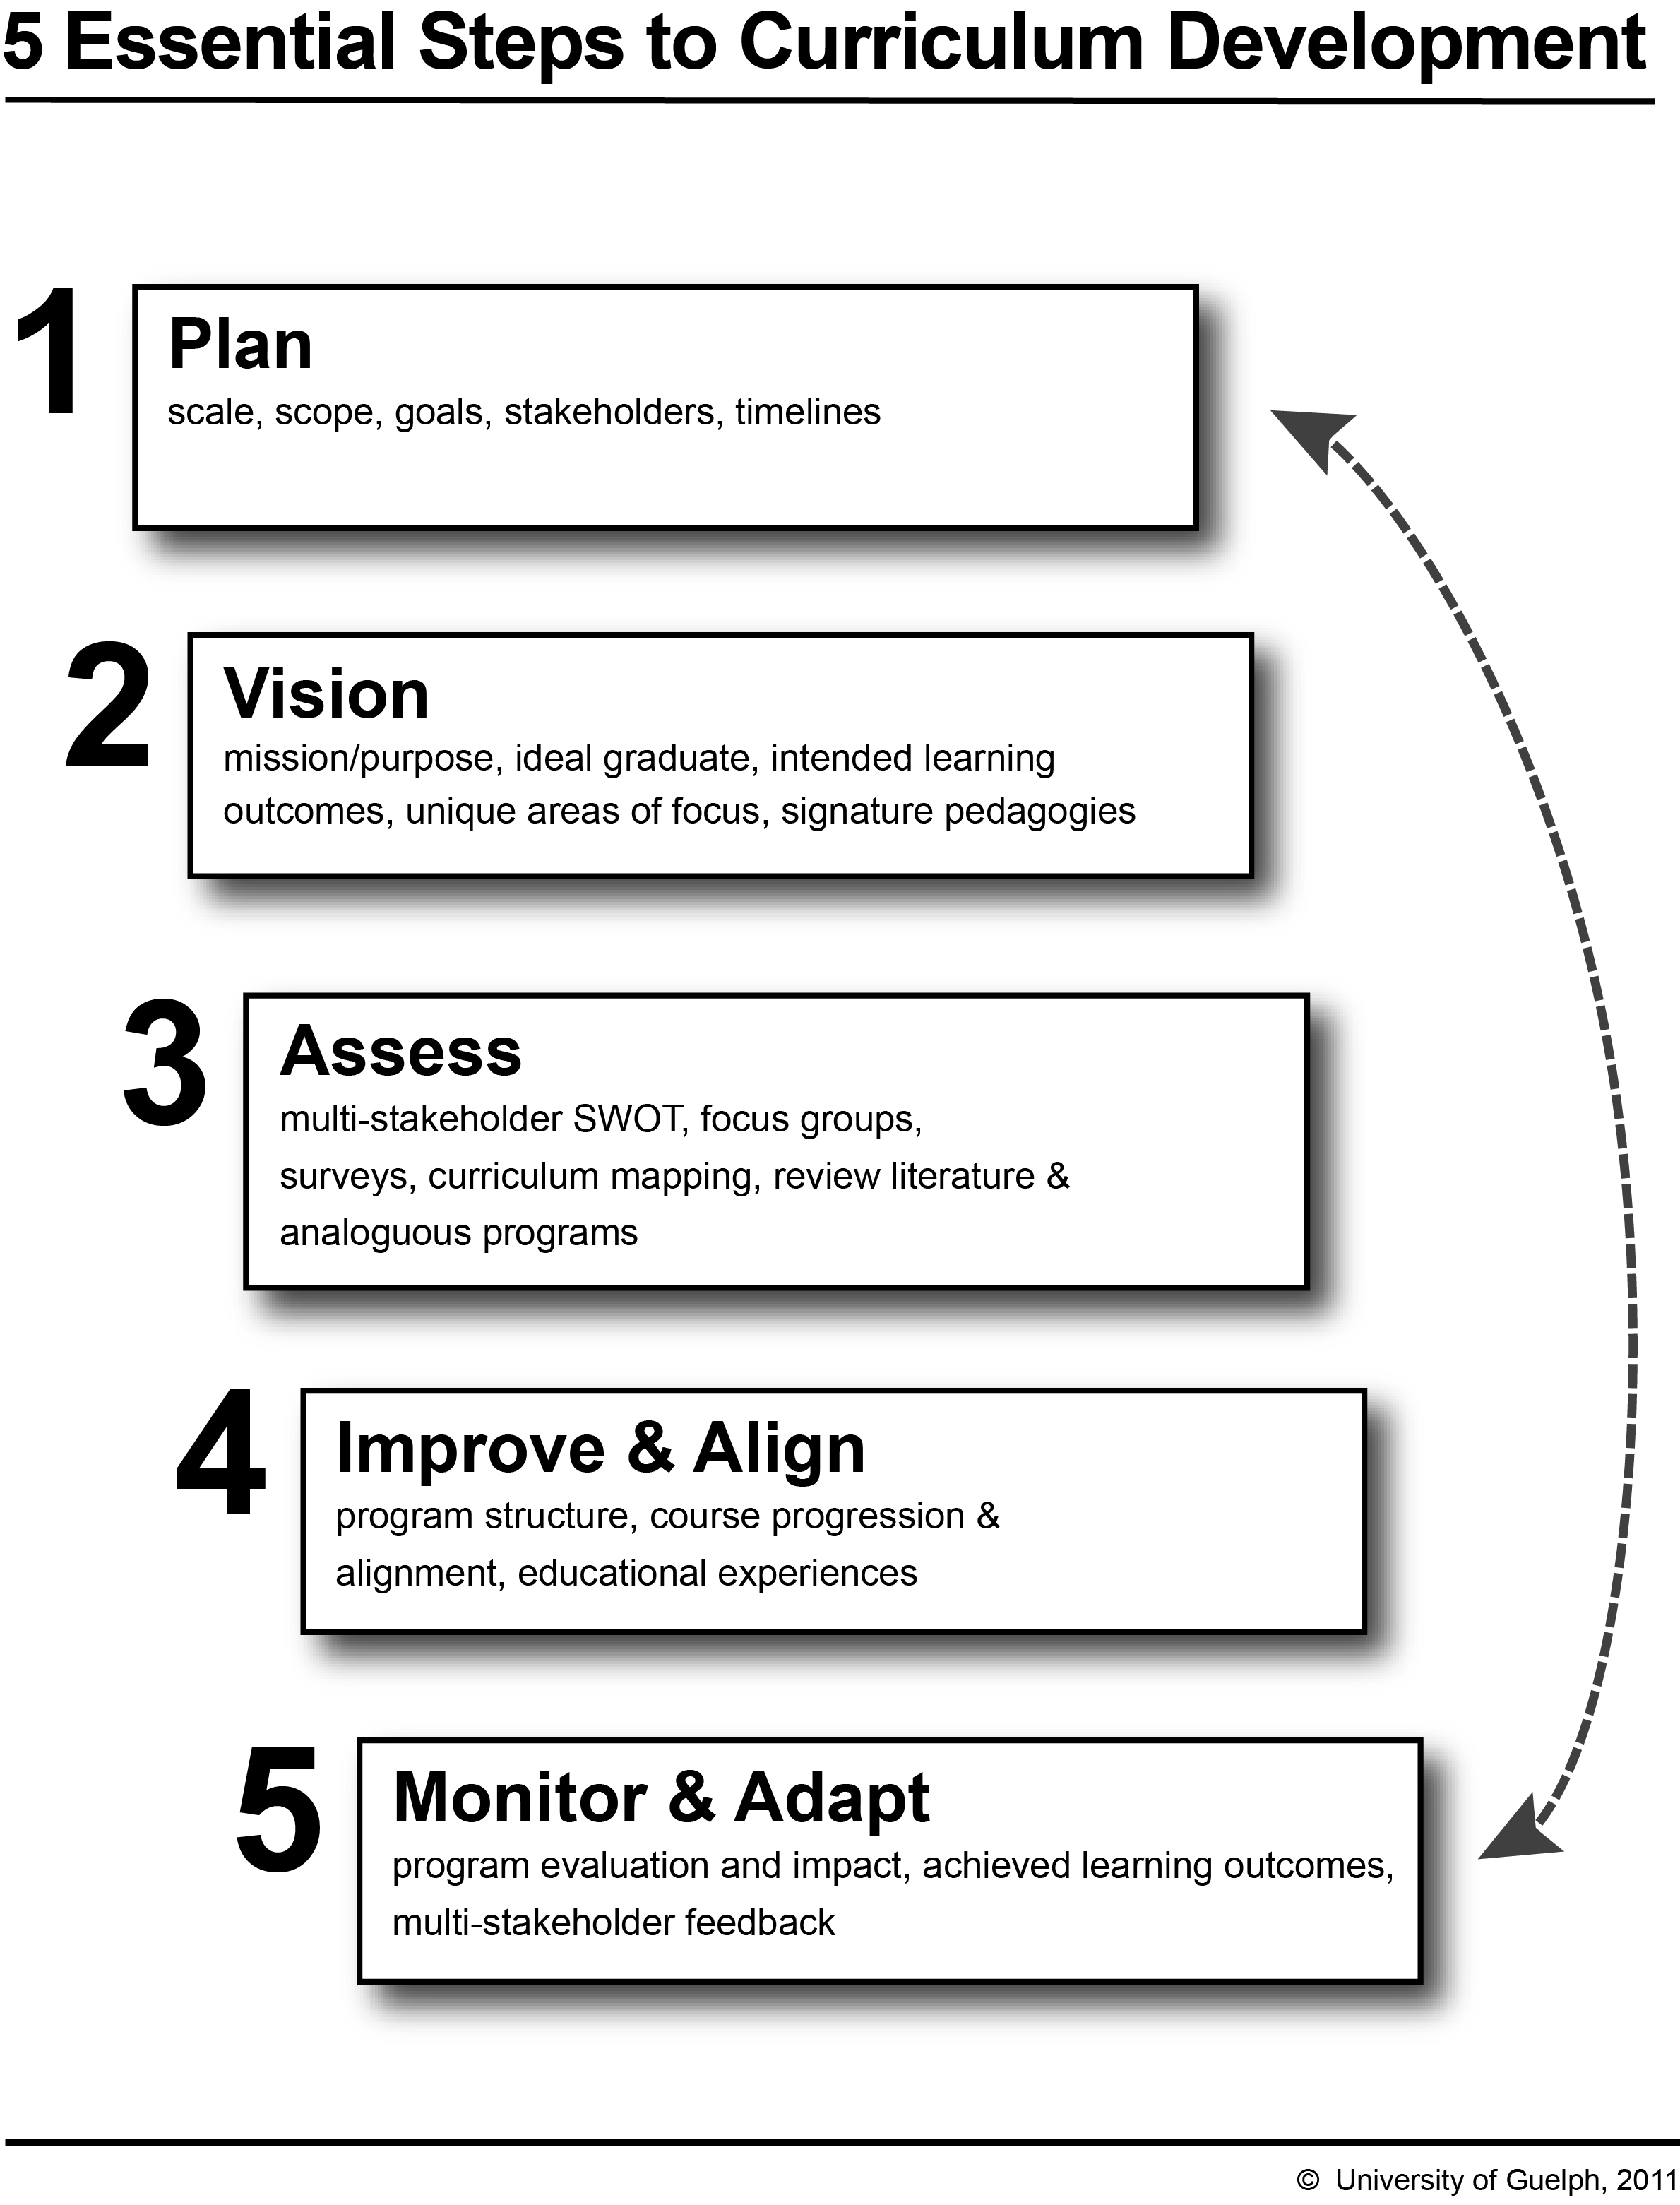 Why should assessments, learning objectives, and instructional strategies be aligned?